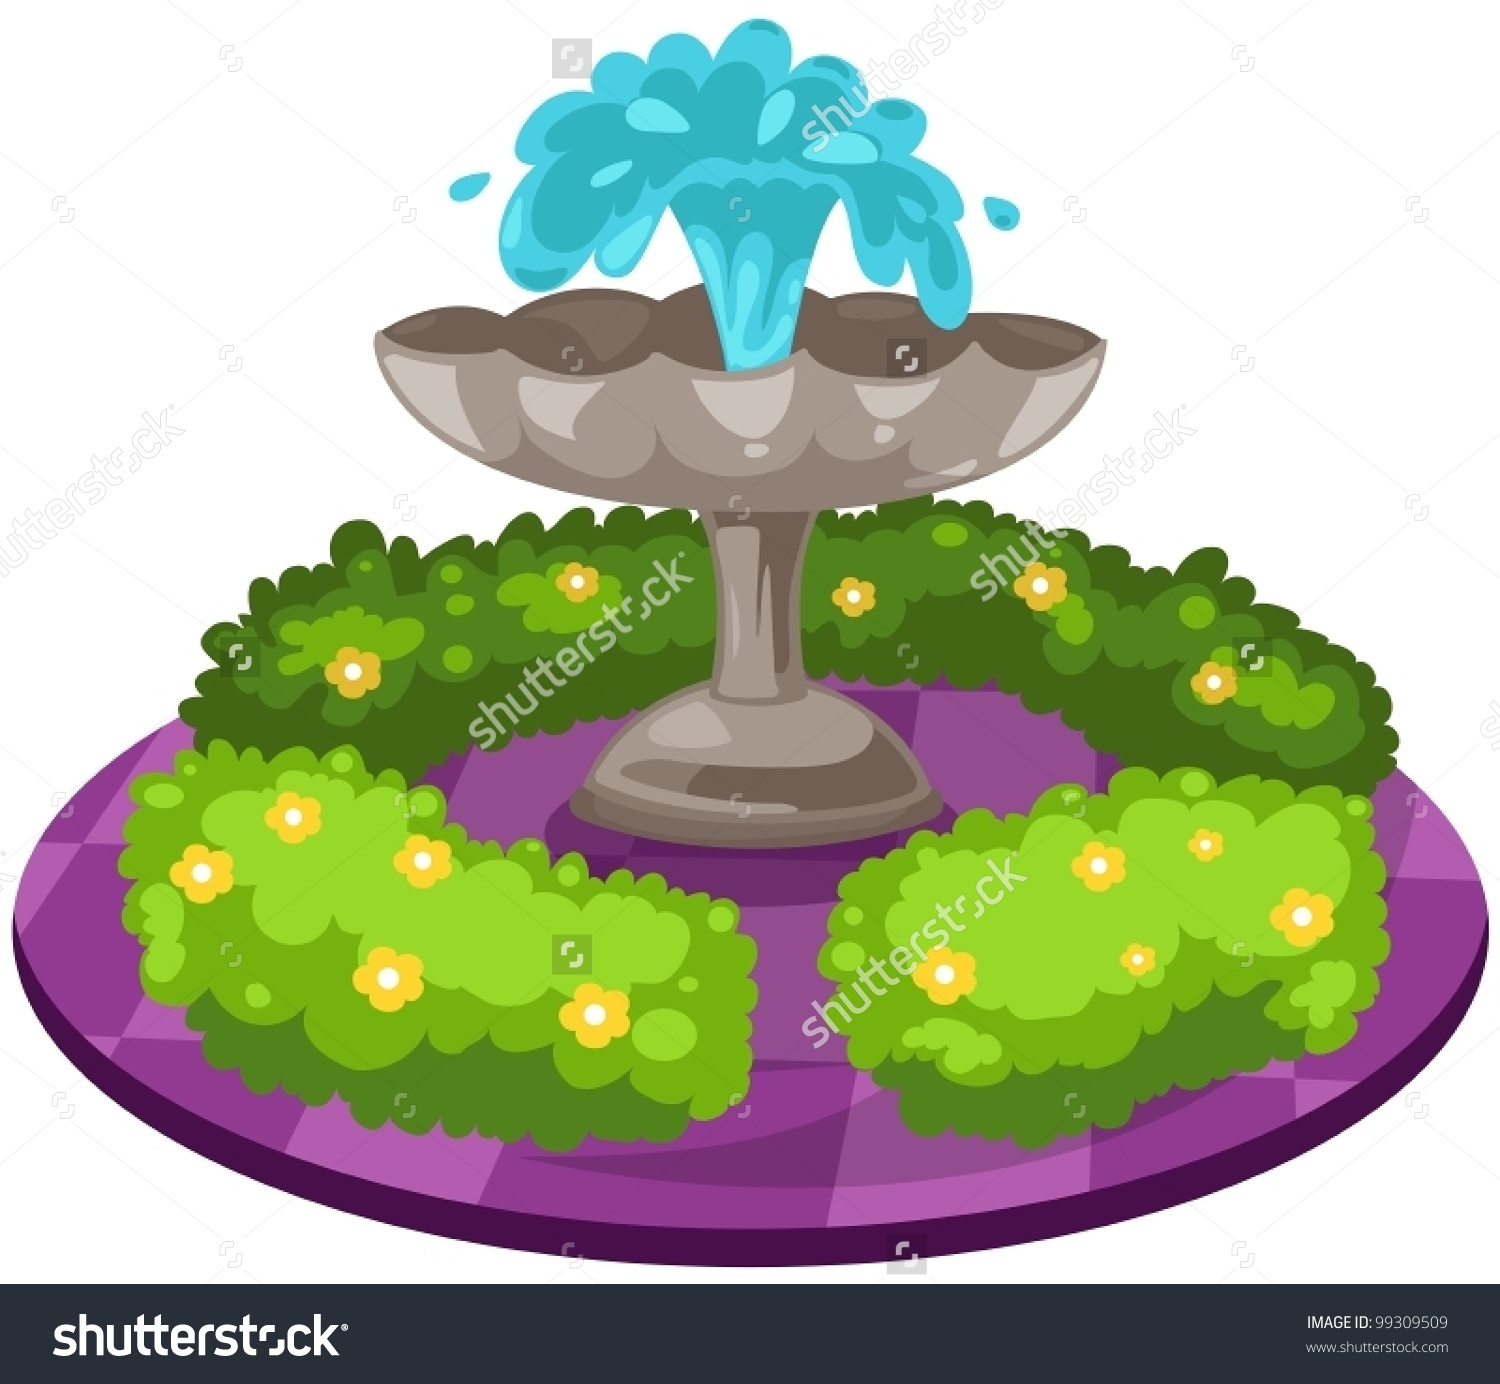 Fountain clipart #16, Download drawings